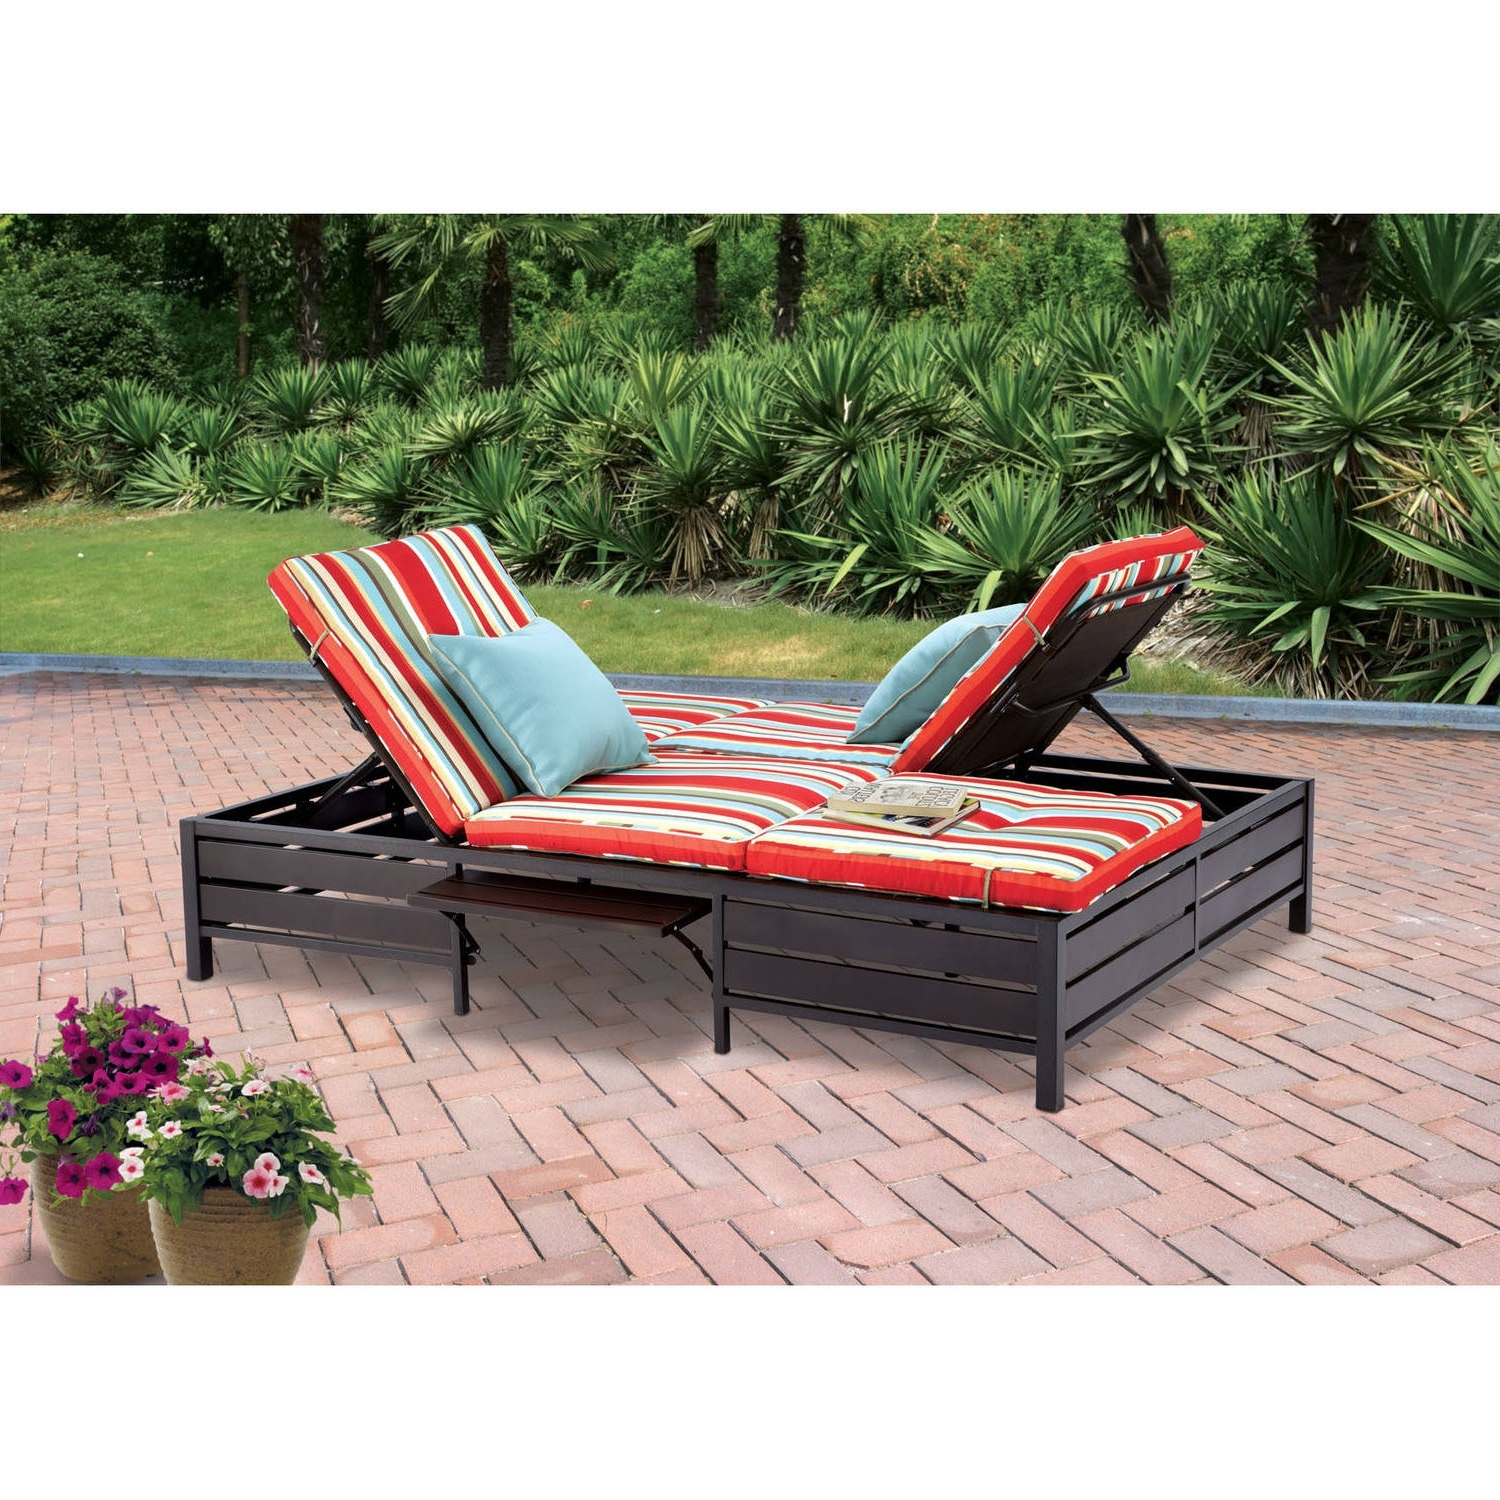 Mainstays Outdoor Double Chaise Lounger, Stripe, Seats 2 – Walmart Throughout Most Recent Walmart Chaise Lounge Cushions (View 2 of 15)